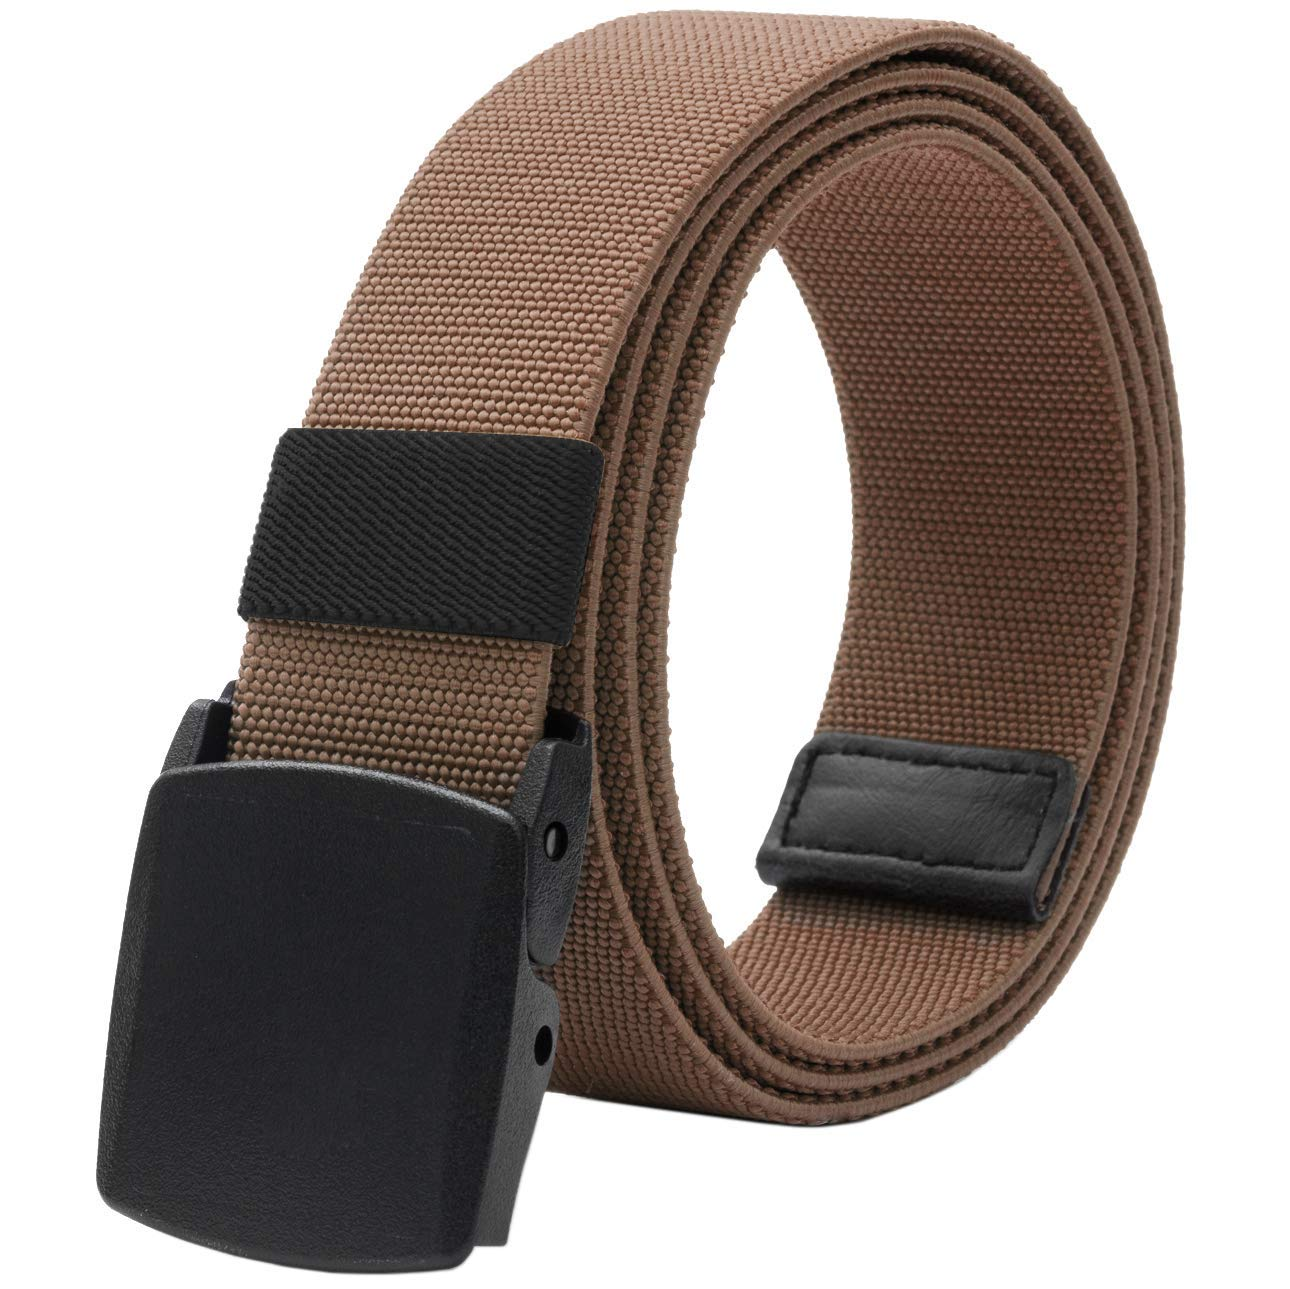 Brown Mens Elastic Stretch Belt Adjustable for Pants Shorts Jeans Below 46 Military Tactical Belts Breathable Canvas Web Belt for Men /& Women with No Metal Plastic Buckle for Work Outdoor Sports